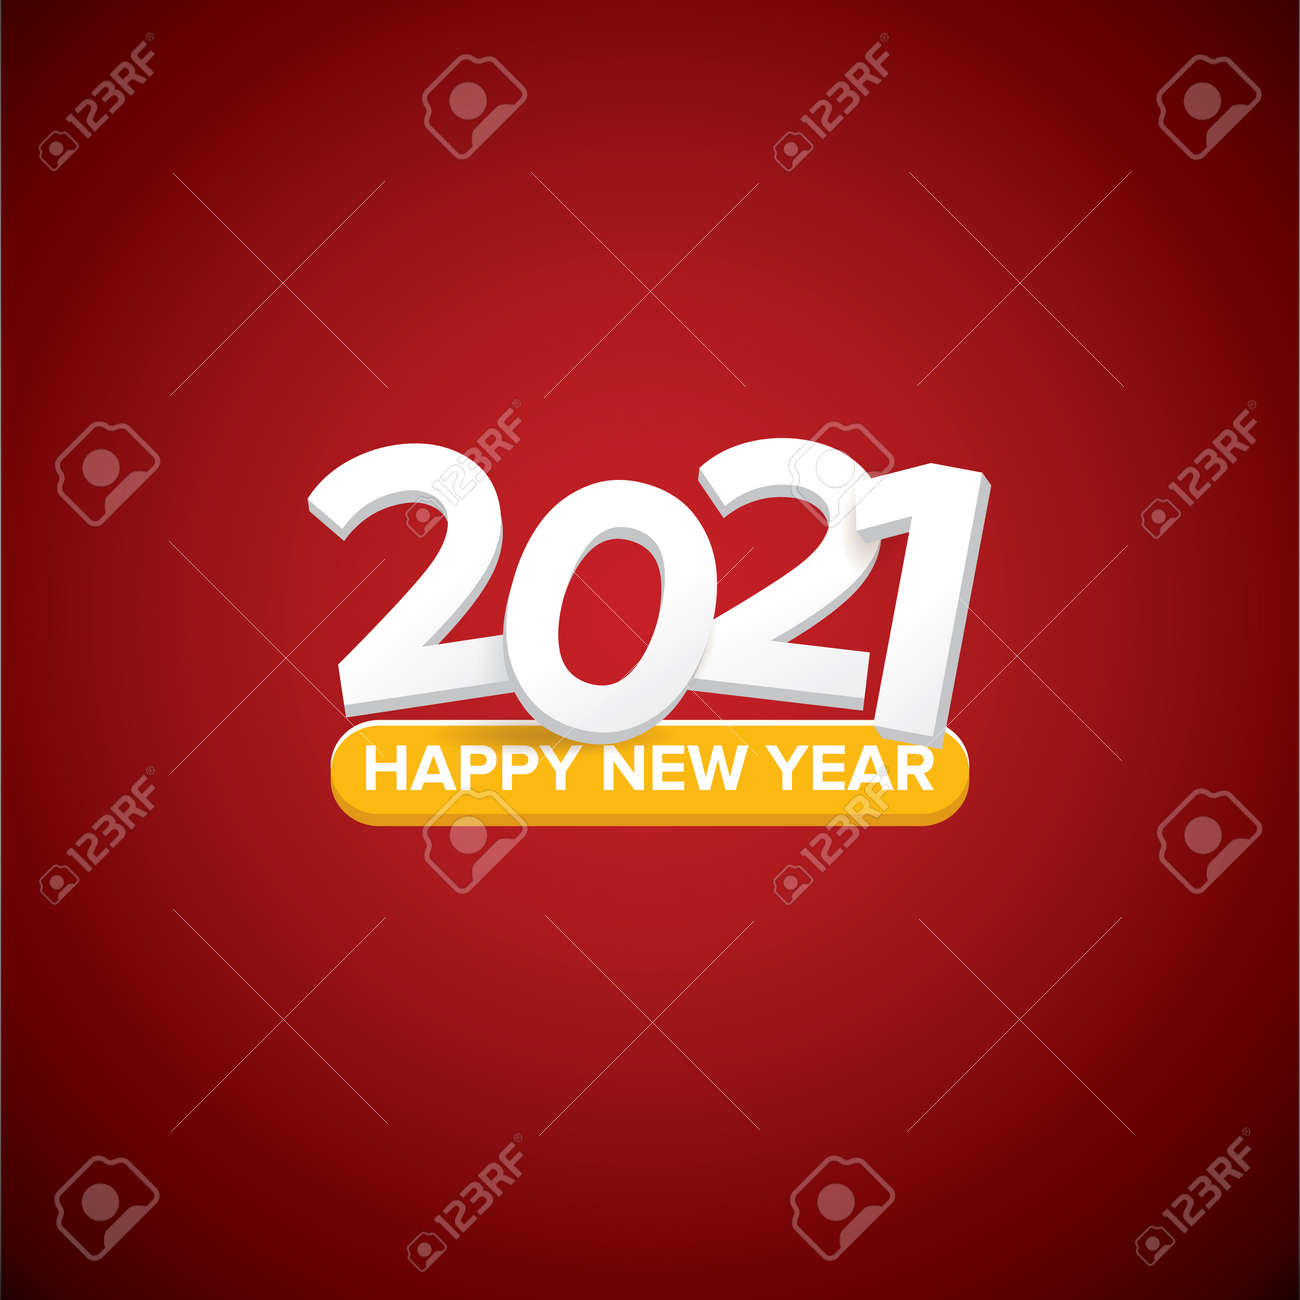 2021 Happy new year creative design background or greeting card with text. vectorr 2021 new year numbers isolated on red on blue background - 154090252